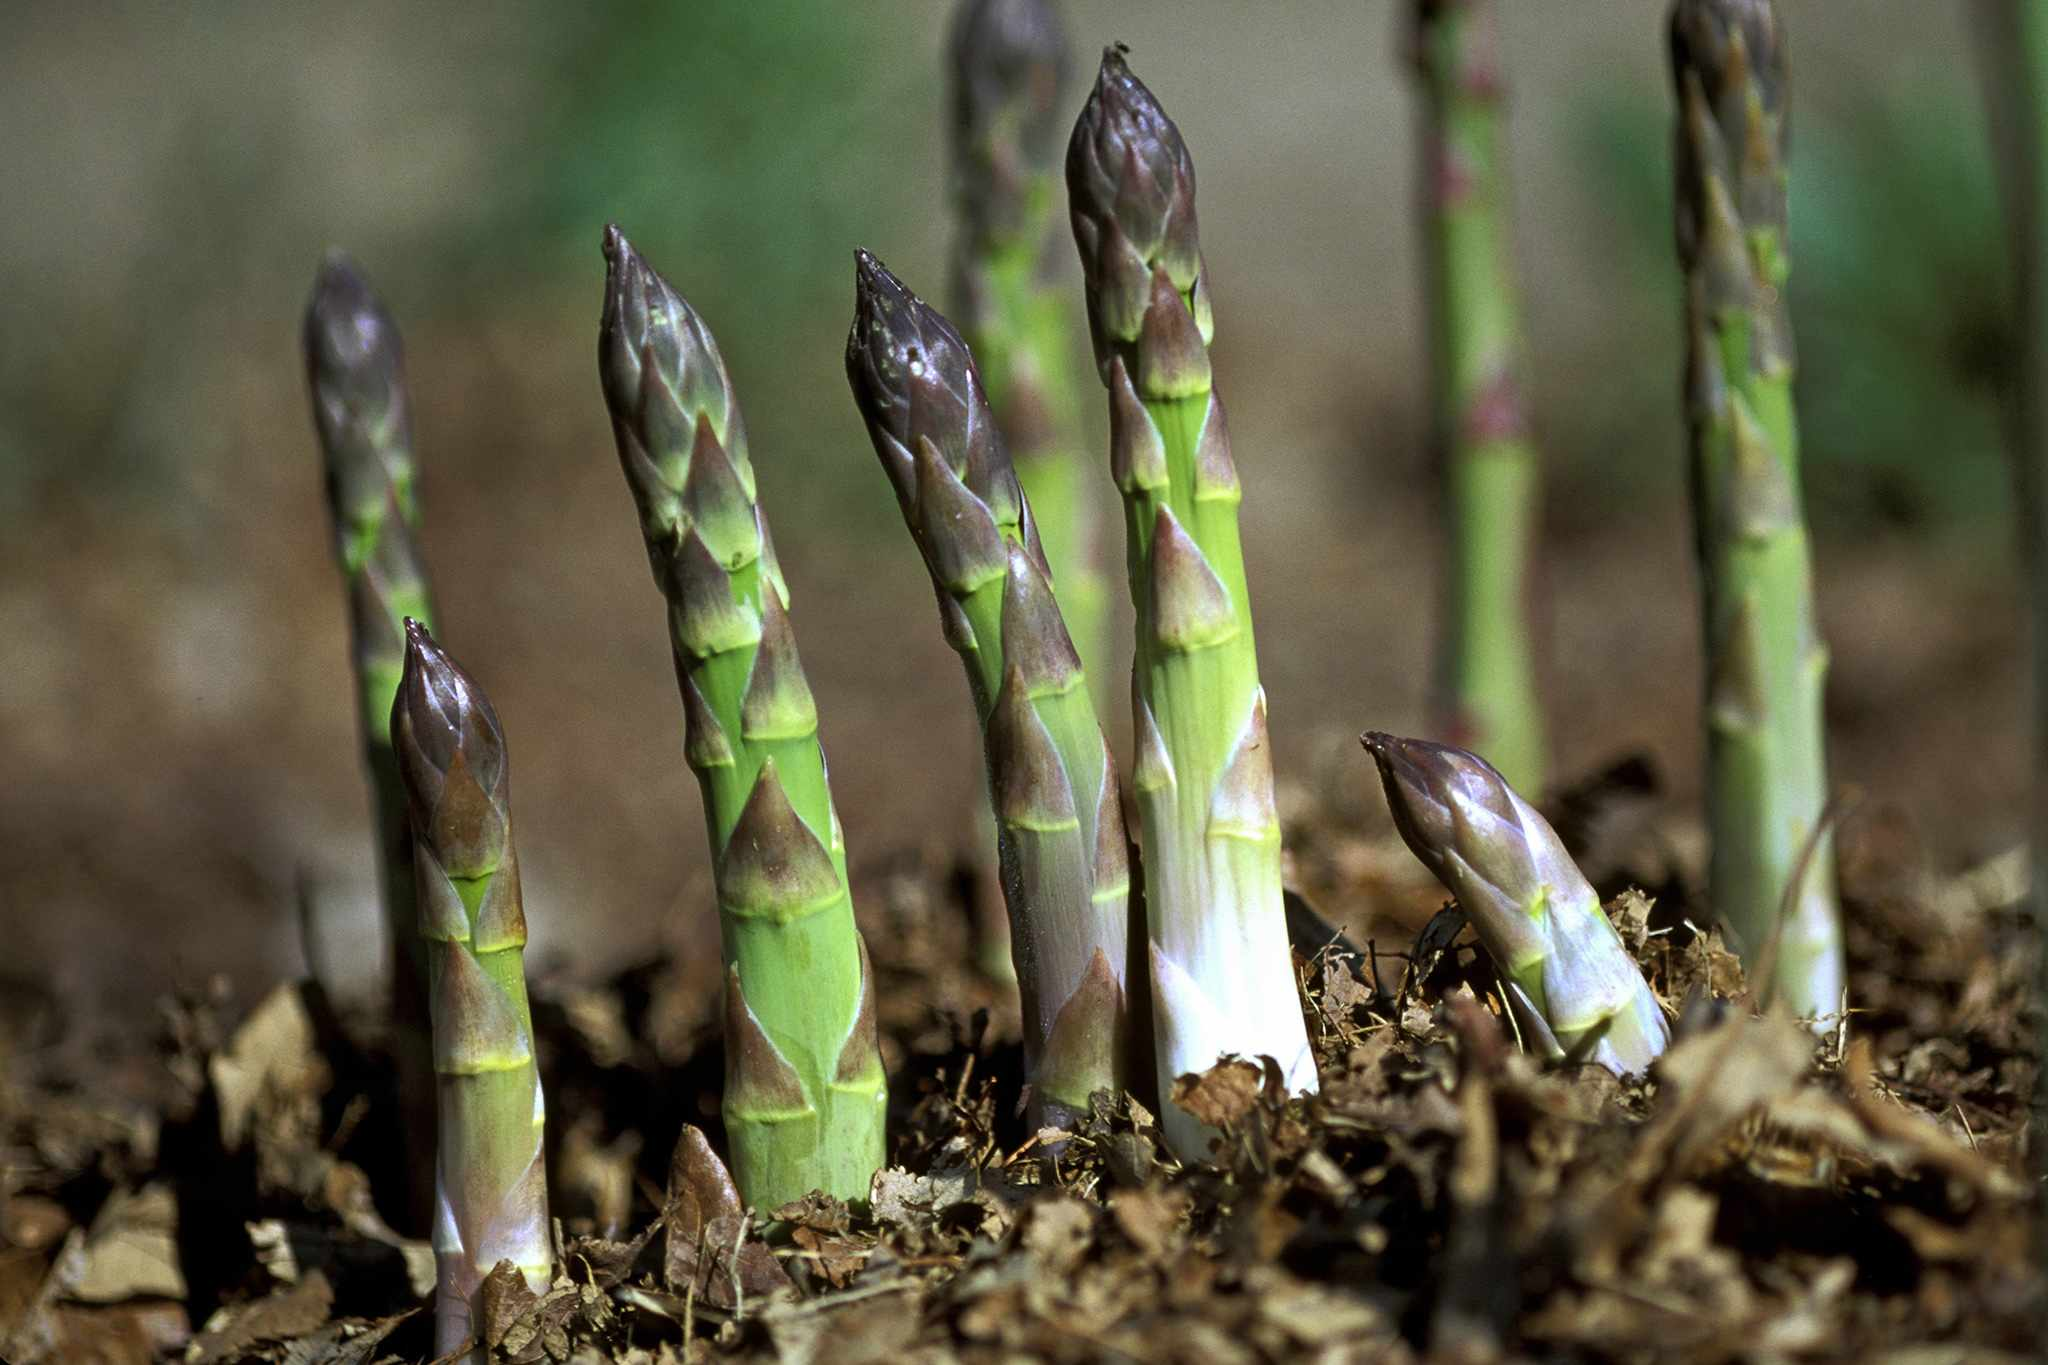 Asparagus spears emerging from the ground